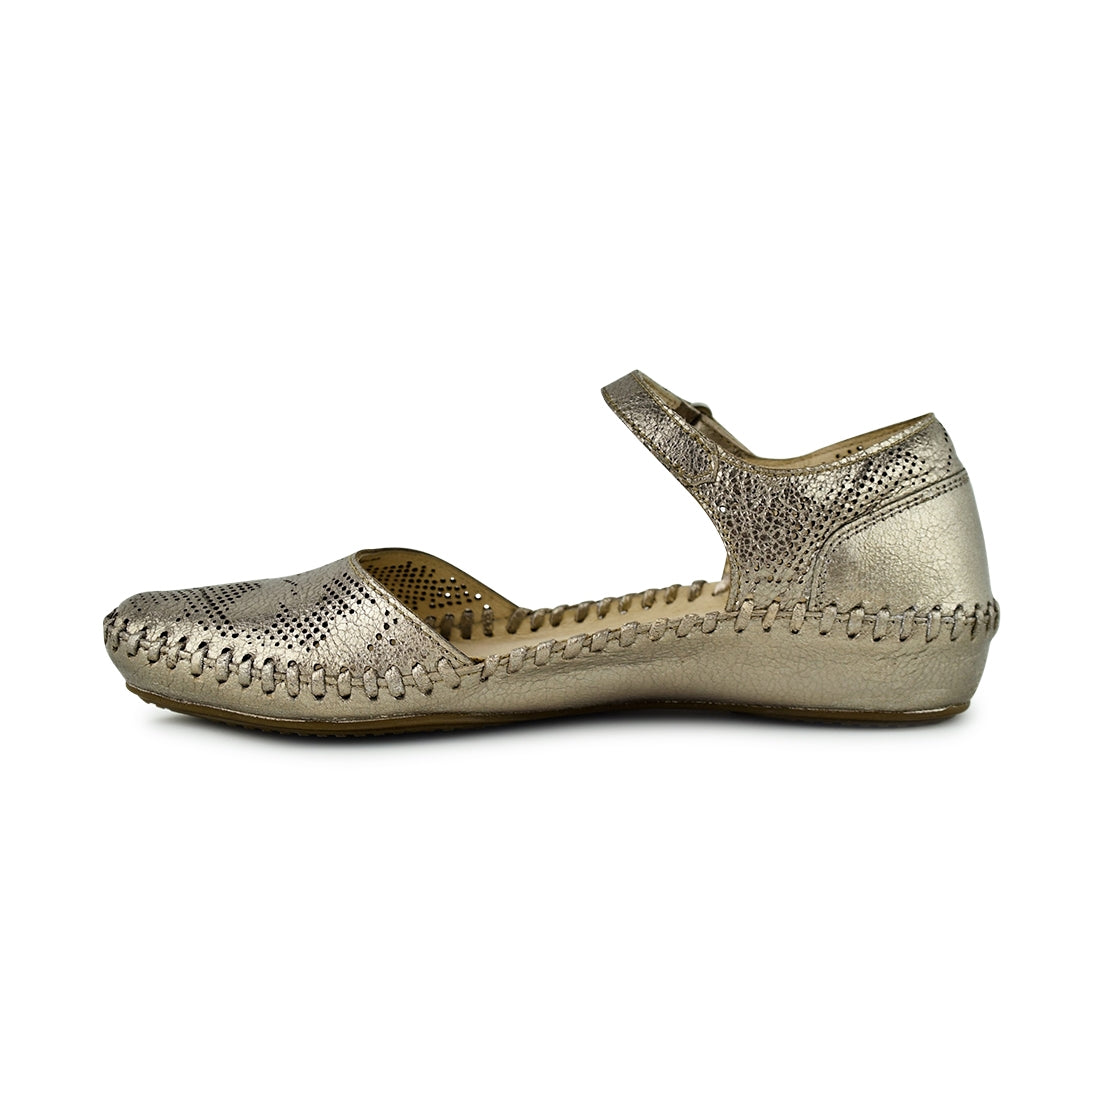 BUENA - Pikolinos Closed Shoe Pewter